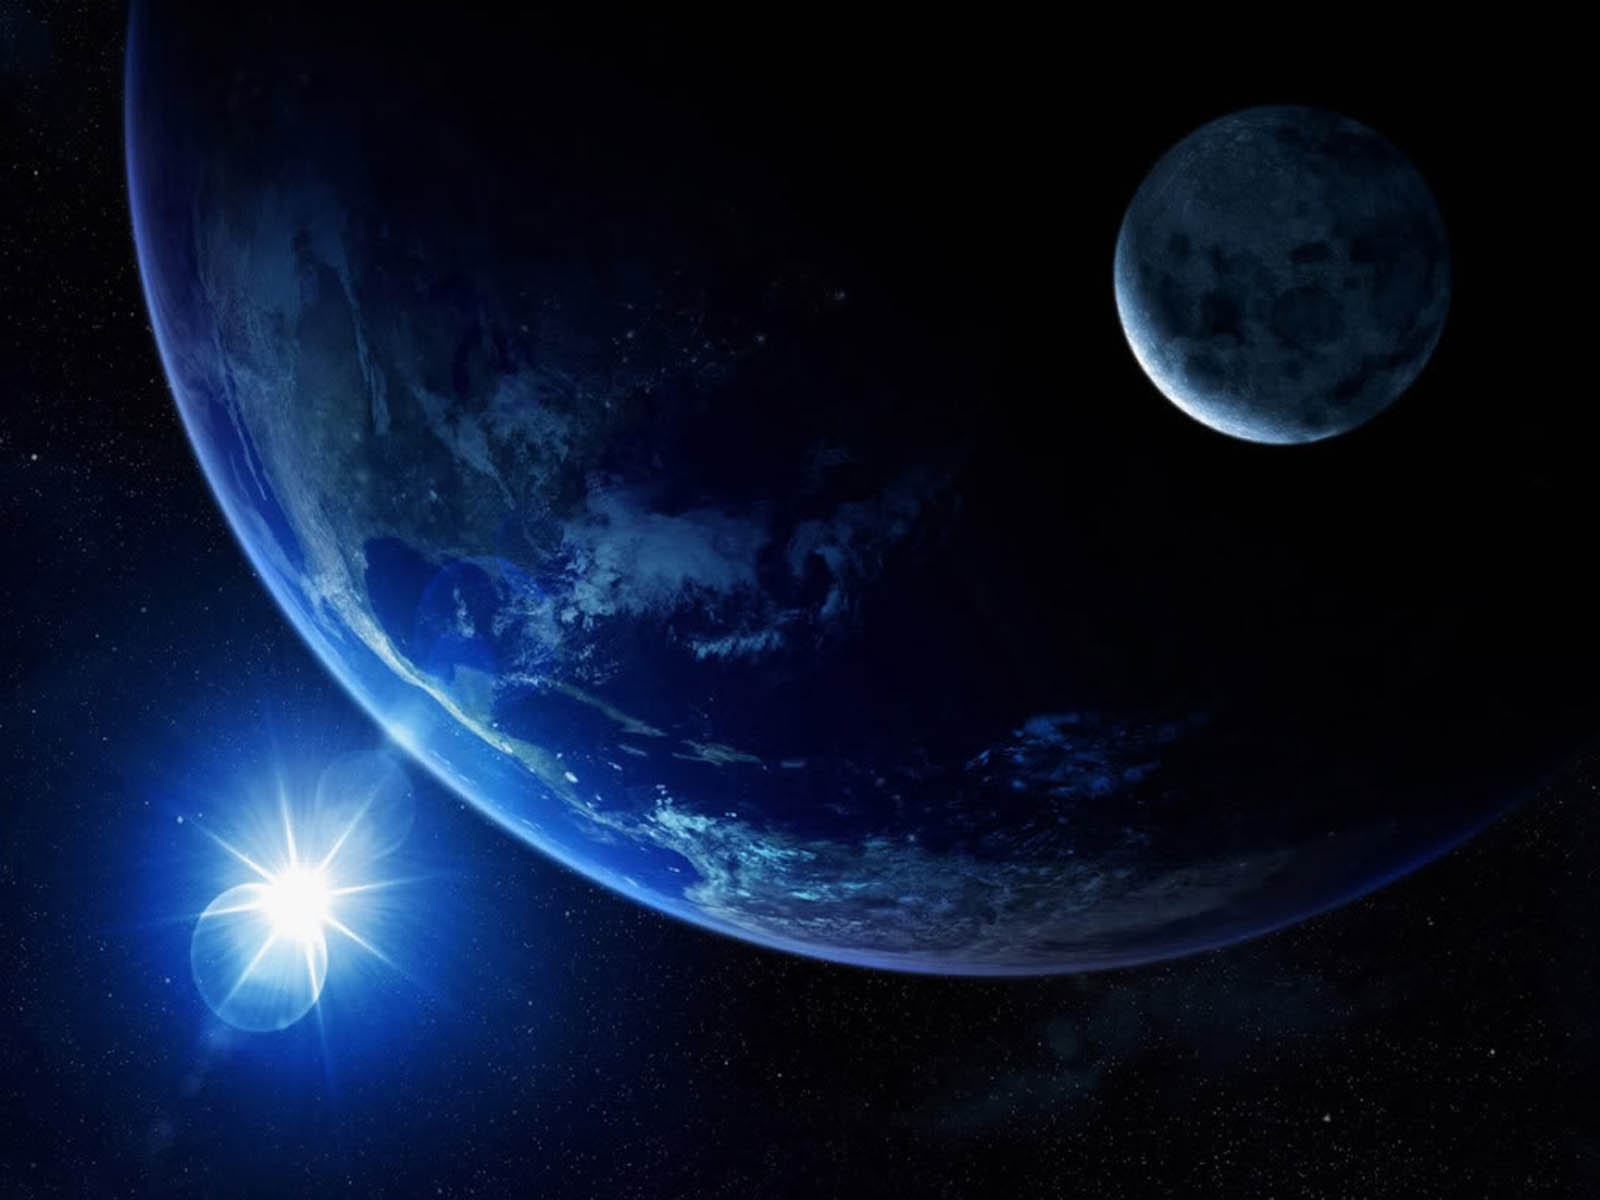 Earth And Moon Wallpapers BackgroundsPhotos Images and Pictures 1600x1200